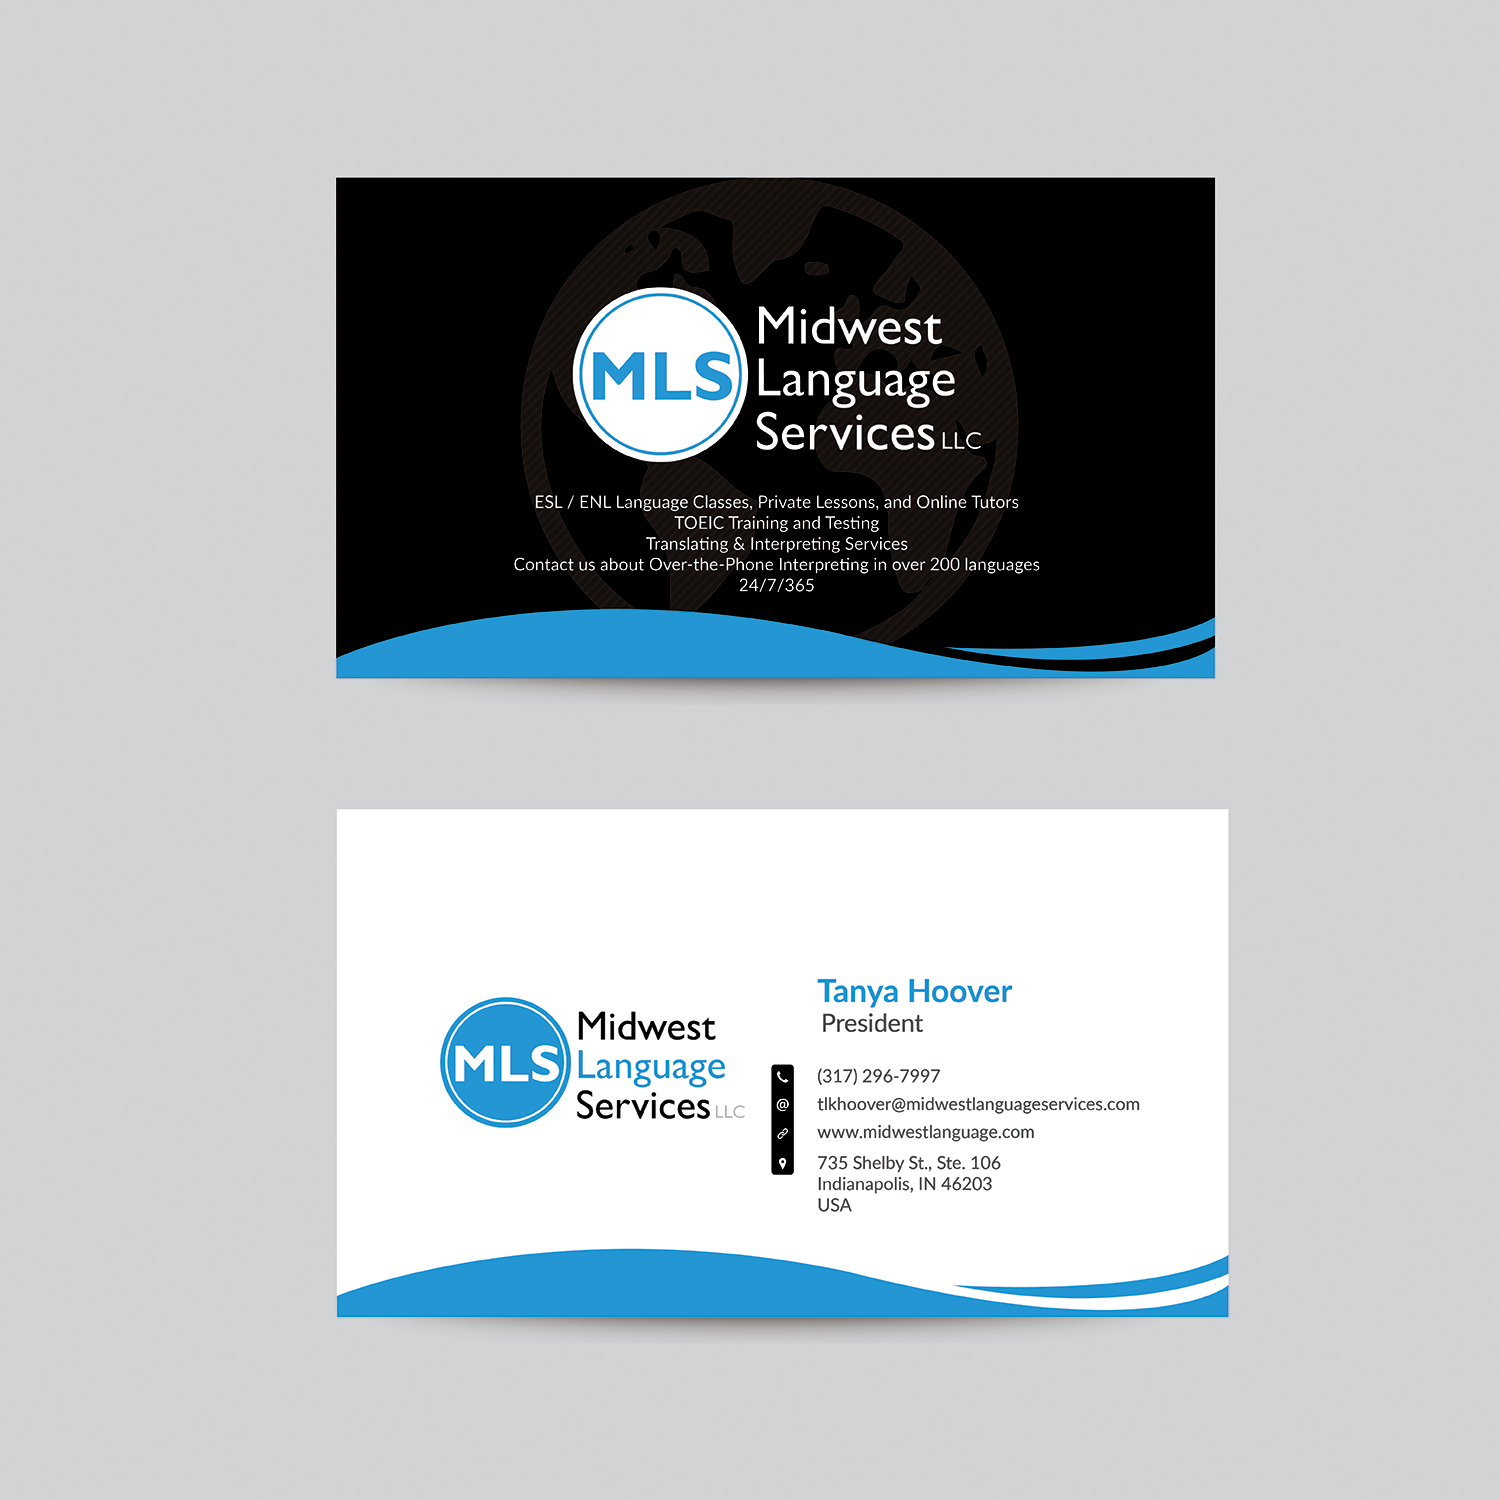 Serious modern business business card design for midwest language business card design by bdesigner9 for midwest language services llc design 17786851 colourmoves